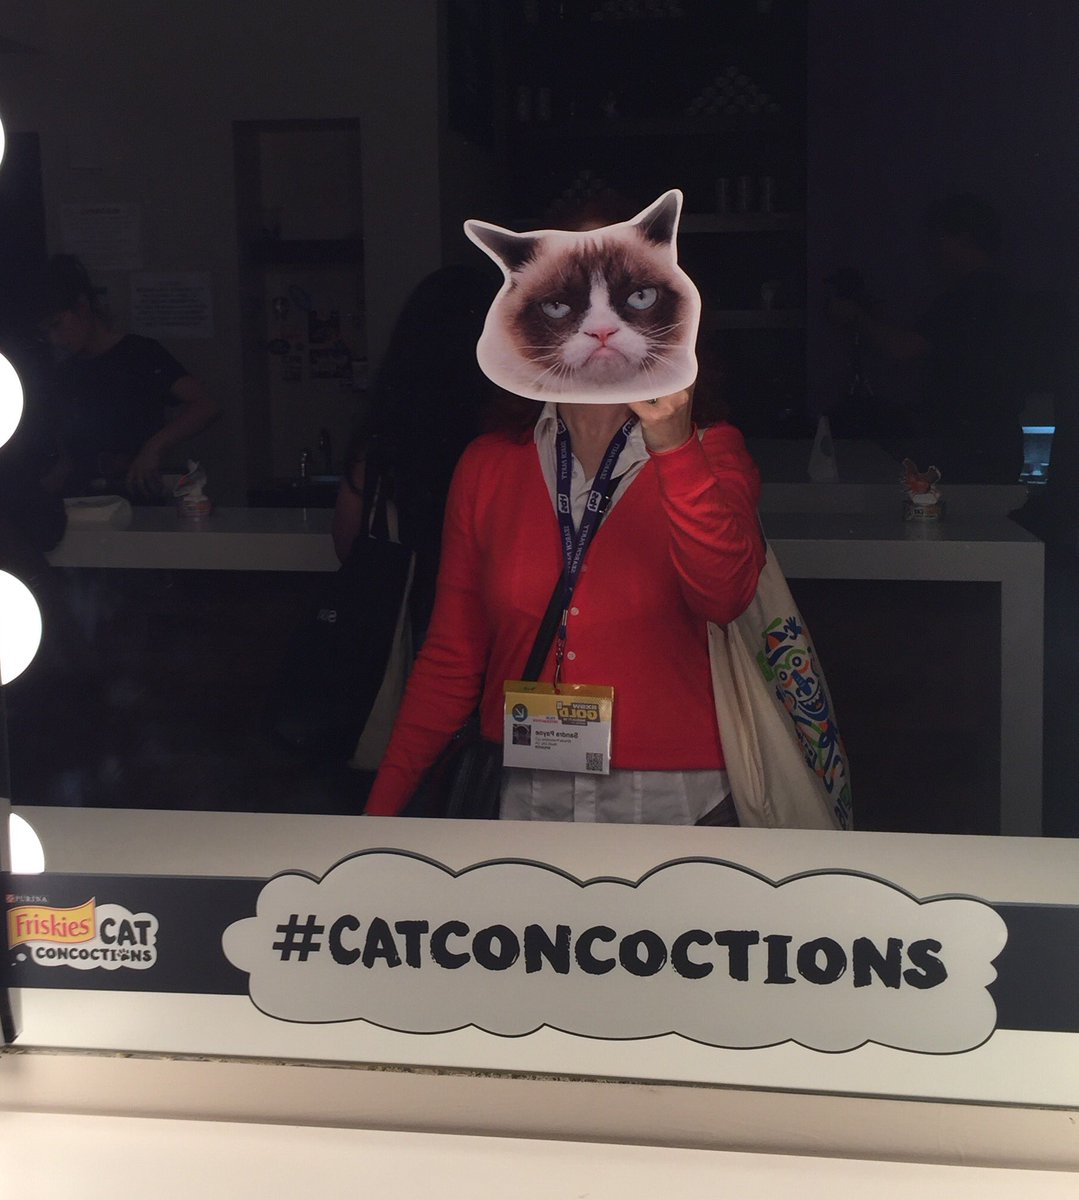 Channeling my inner @RealGrumpyCat at #sxsw! #CatConcoctions https://t.co/Vcp18vscl8